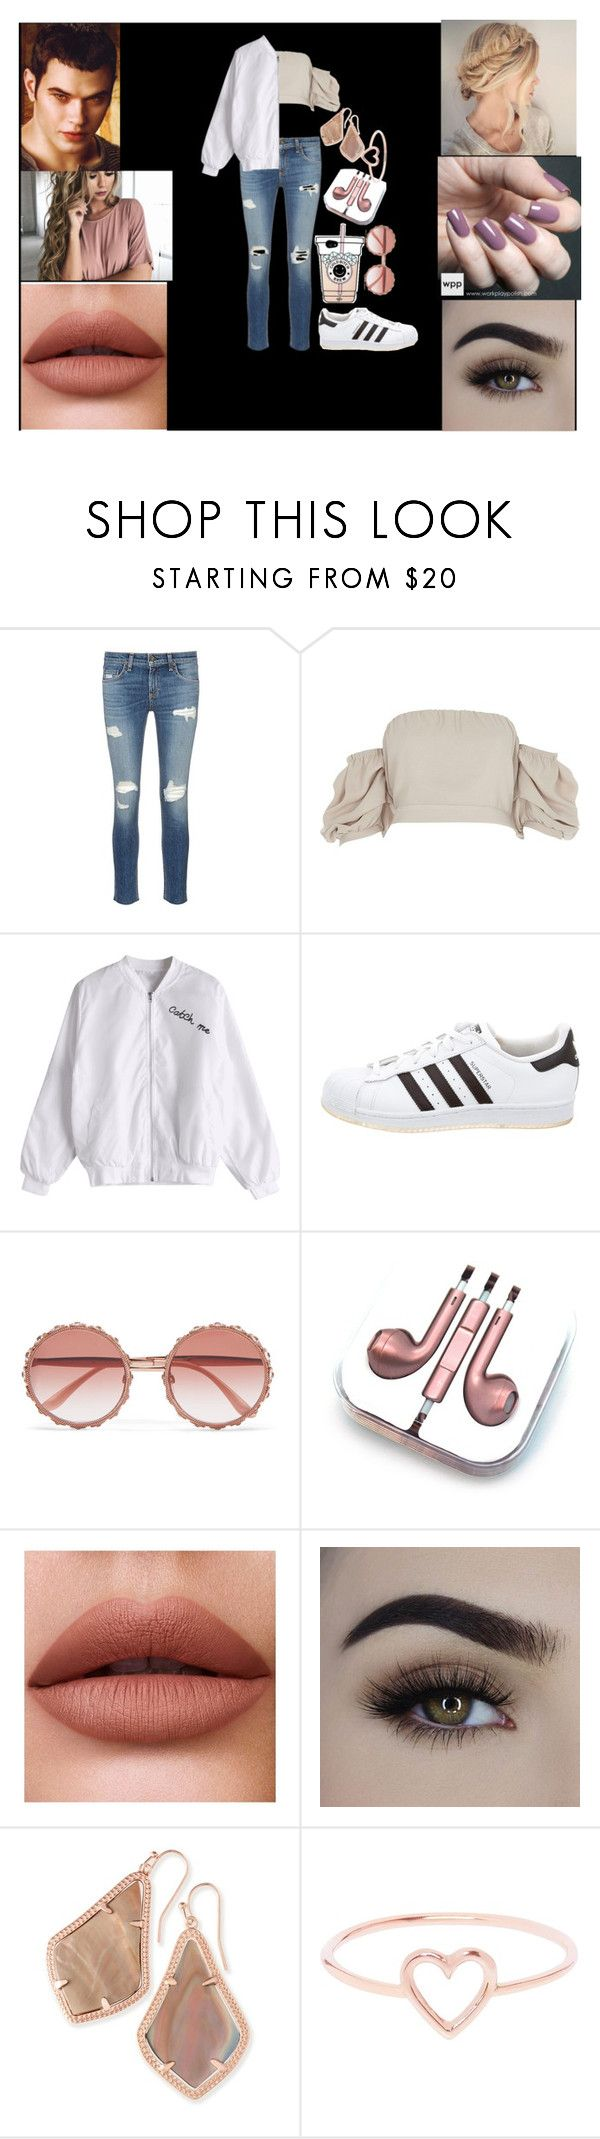 """Untitled #95"" by super-geeky-fangirl on Polyvore featuring rag & bone/JEAN, River Island, adidas, Dolce&Gabbana, PhunkeeTree, Zoya, Kendra Scott, Love Is and Cullen"